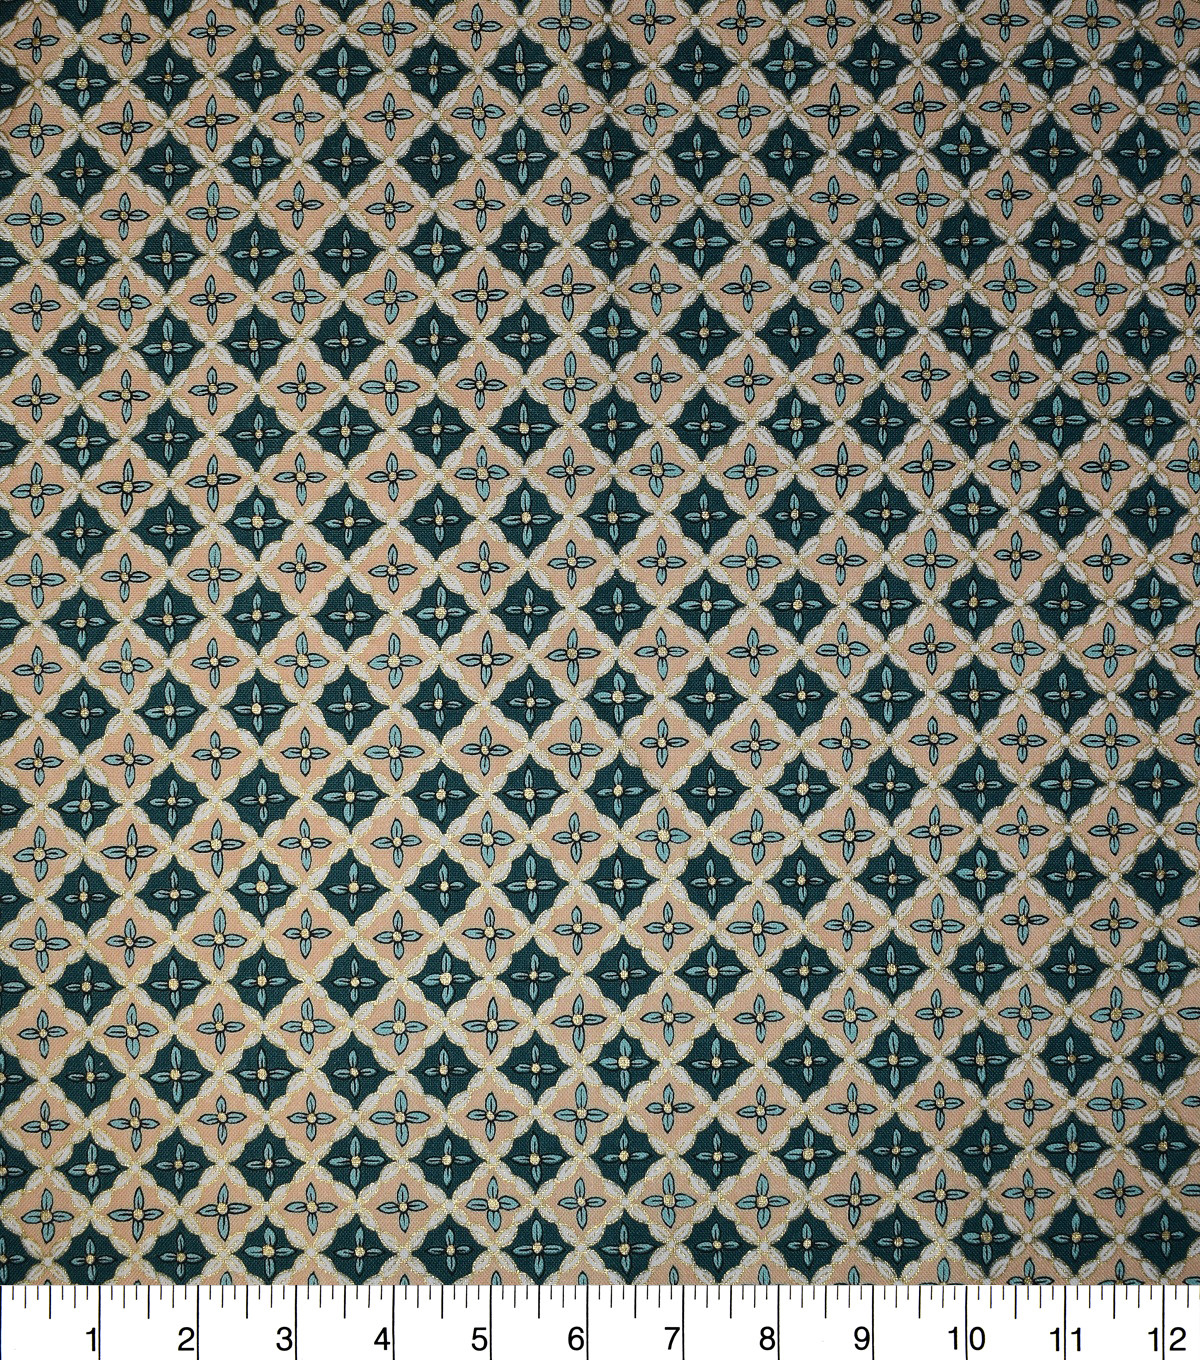 Premium Cotton Print Fabric -Teal & Metallic Packed Diamonds